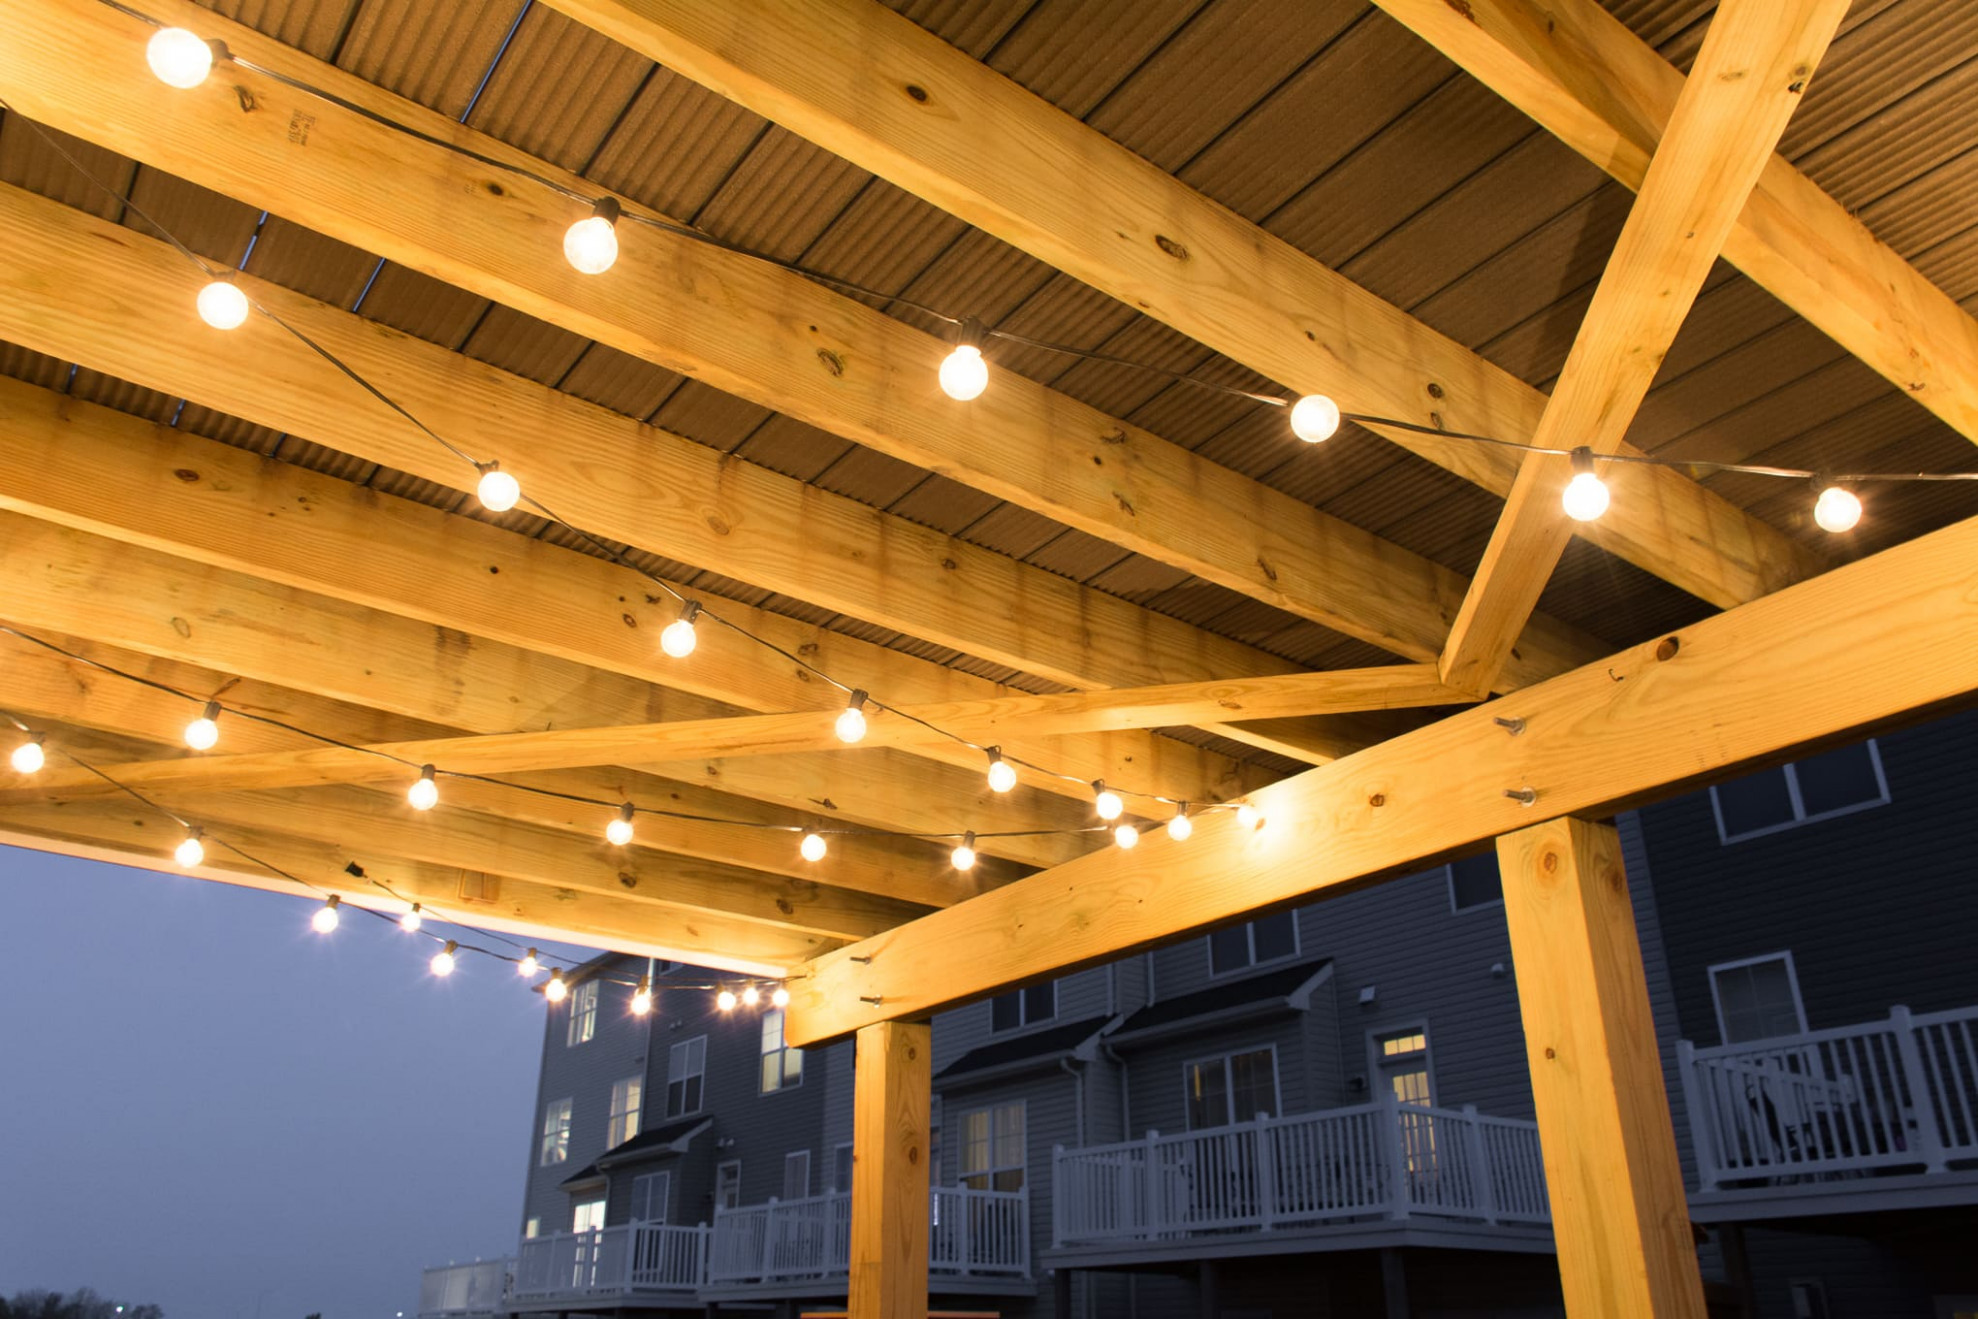 How To Hang Globe String Lights Under A Deck: Hang Patio ..